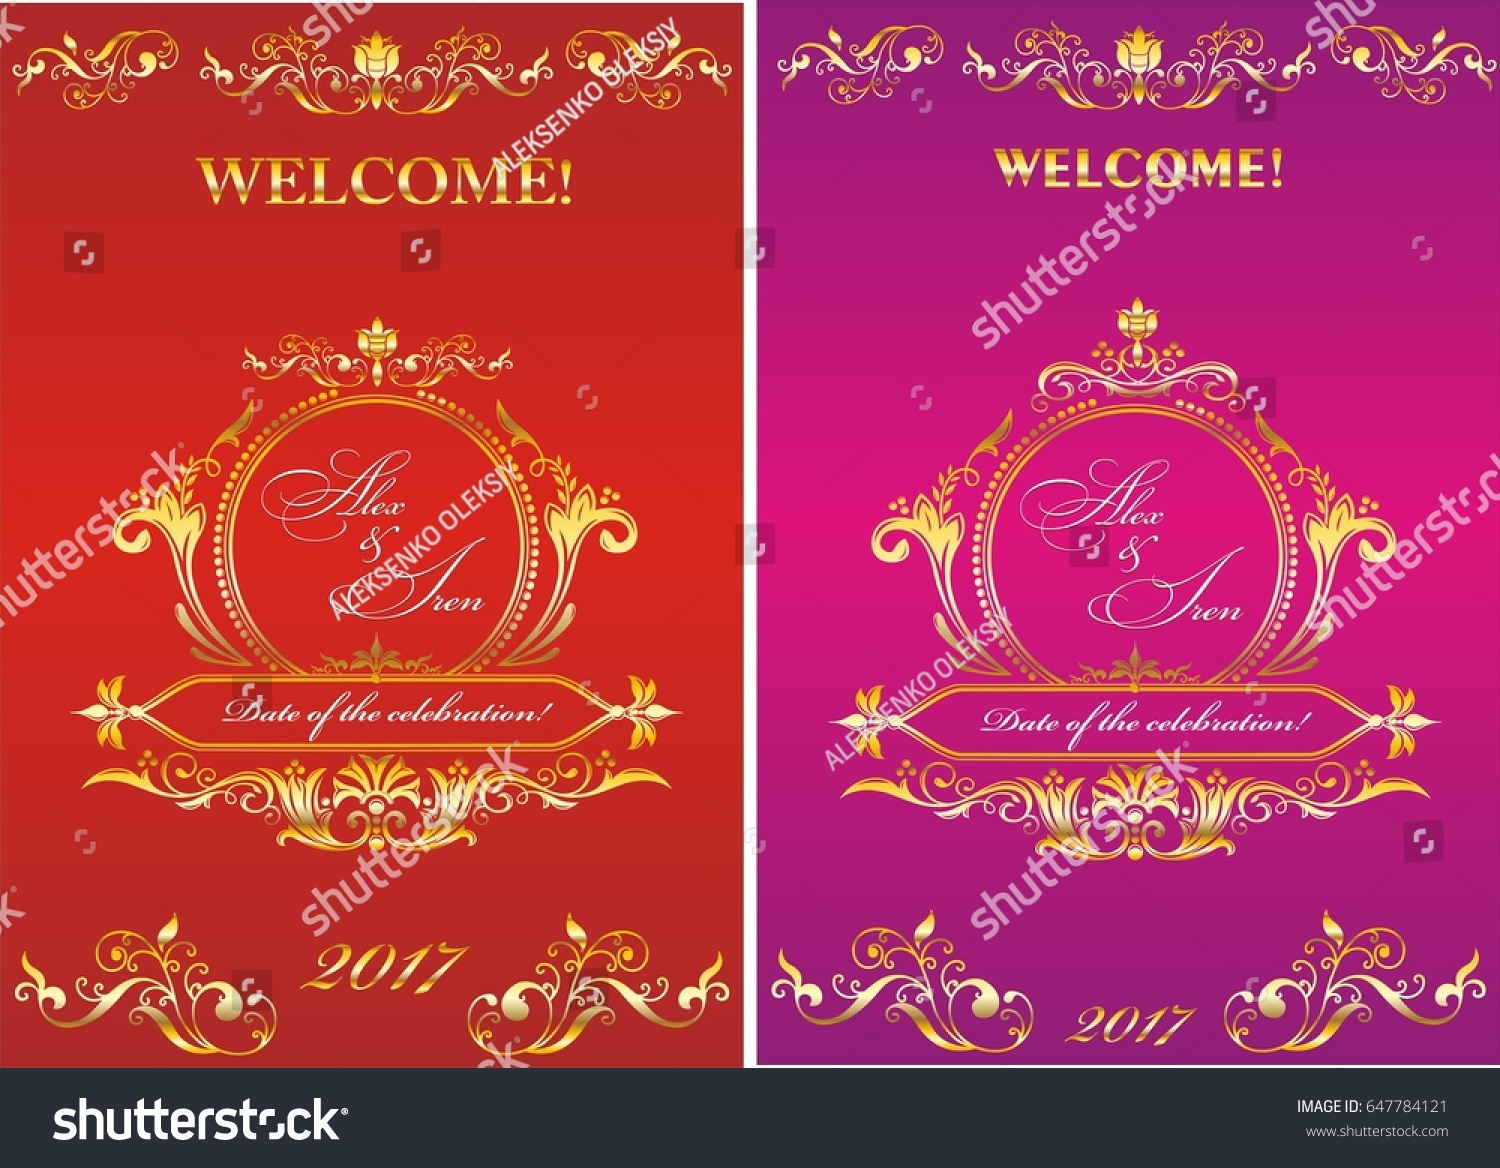 Template Invitation Wedding Vintage Frame On Stock Vector (Royalty ...